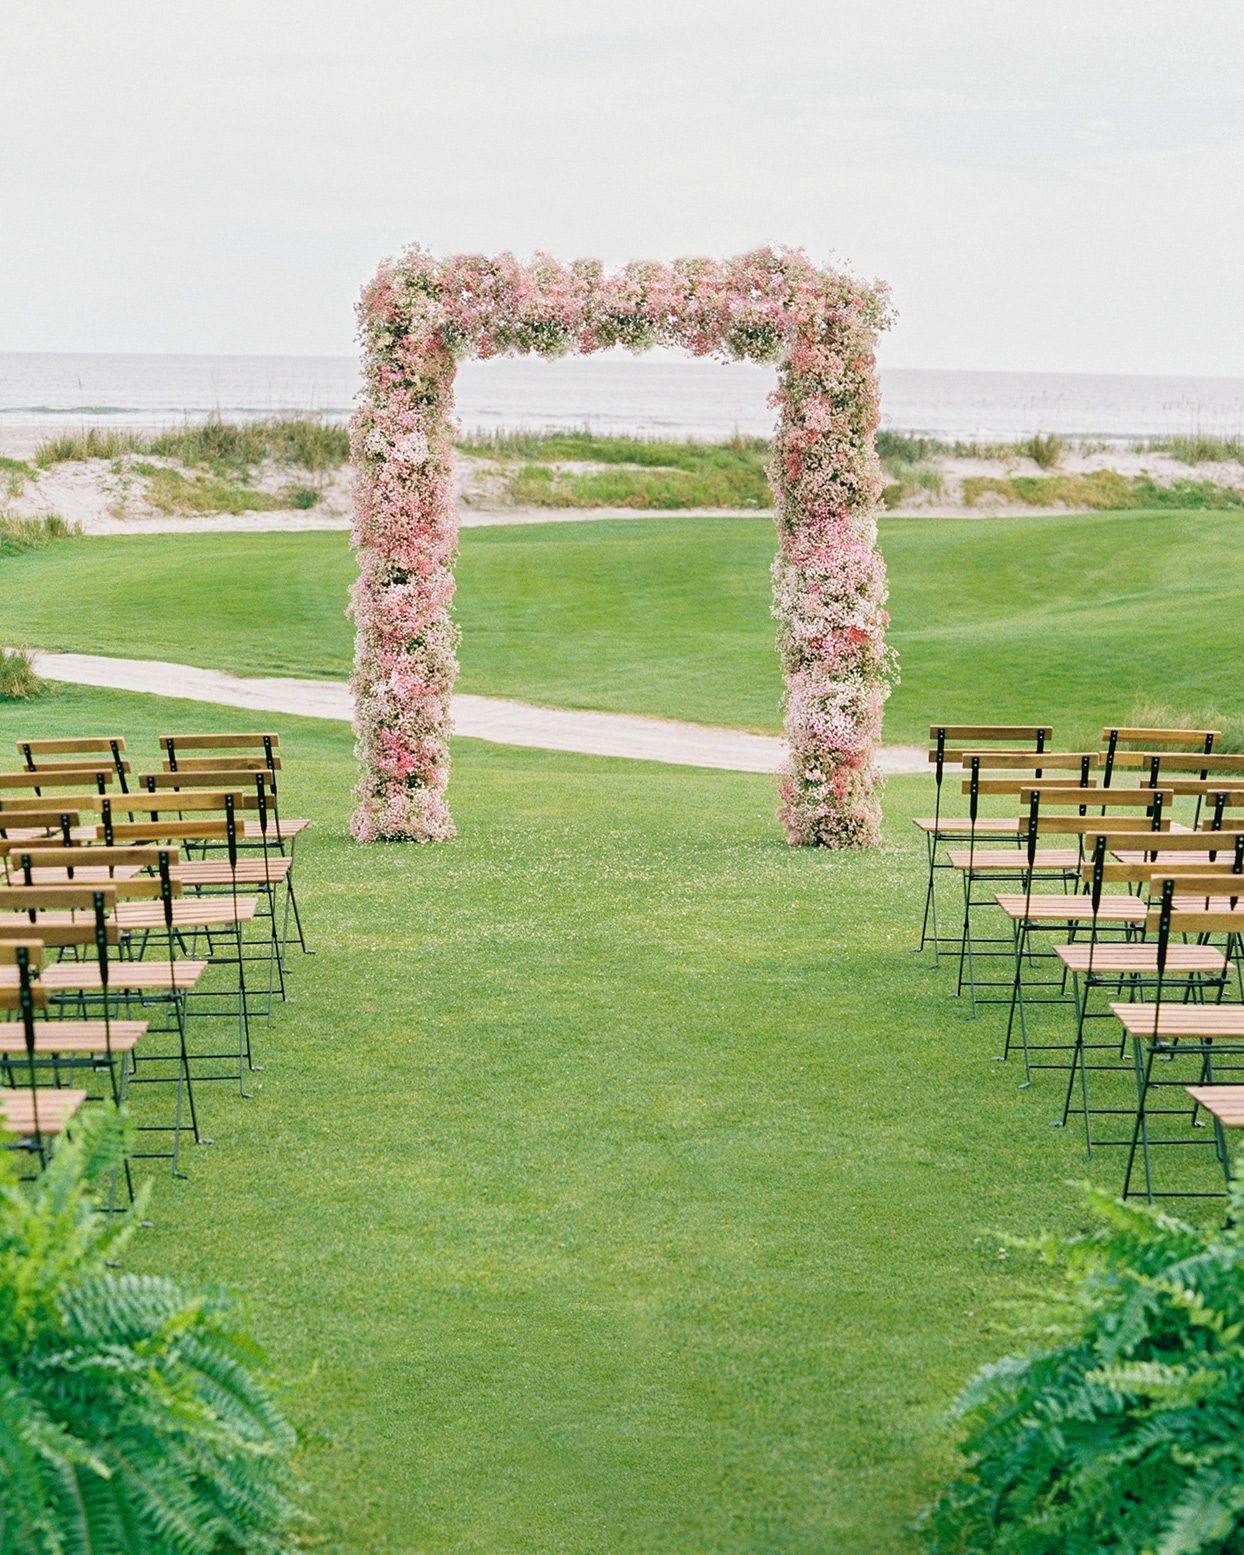 lauren dan wedding ceremony site by the water